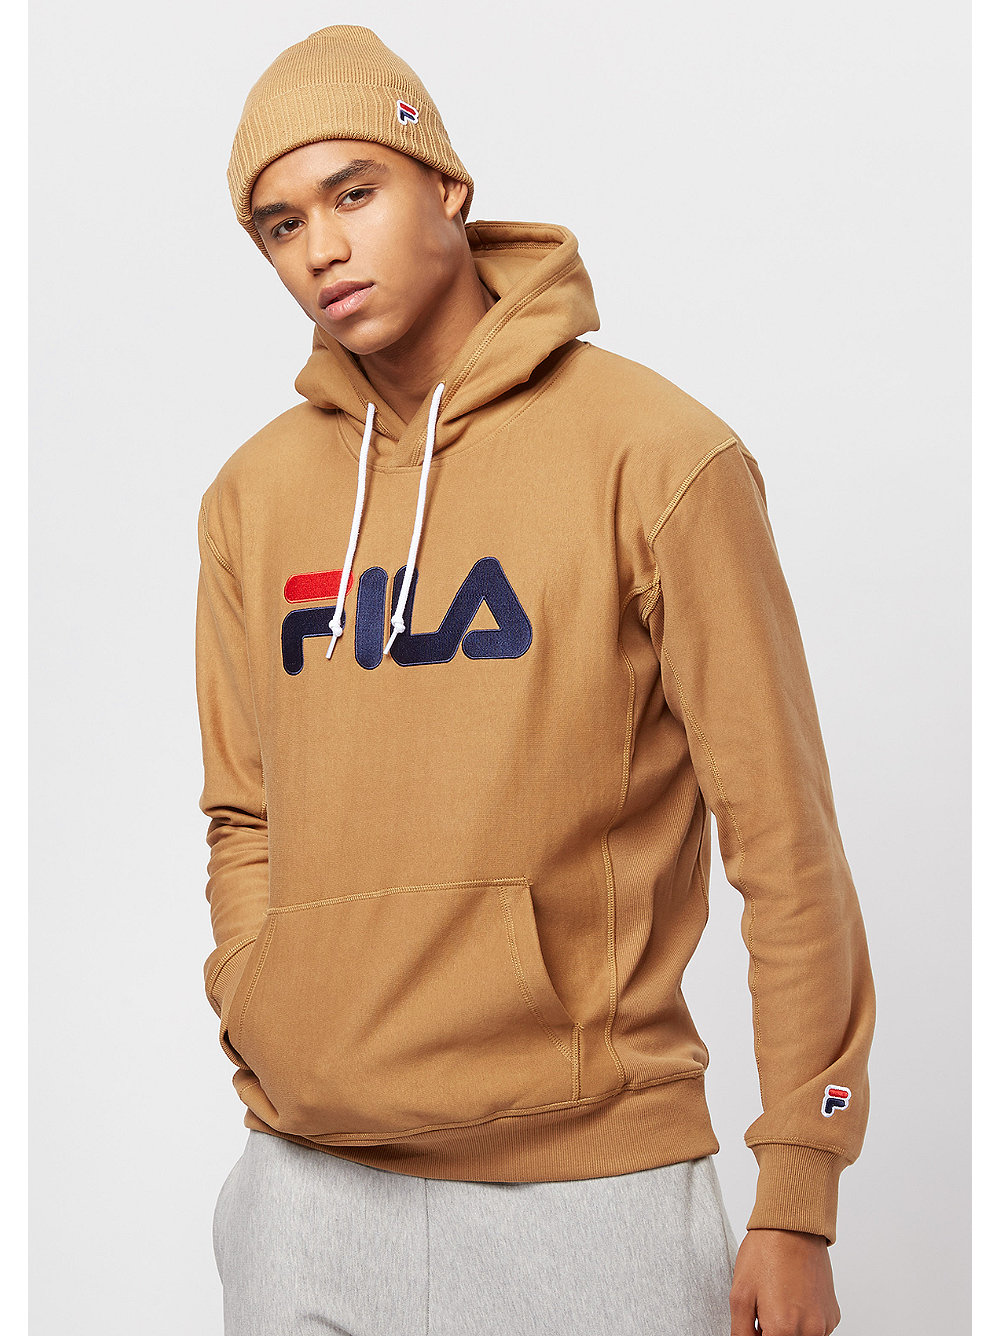 fila x snipes men hoody camel bei snipes bestellen. Black Bedroom Furniture Sets. Home Design Ideas